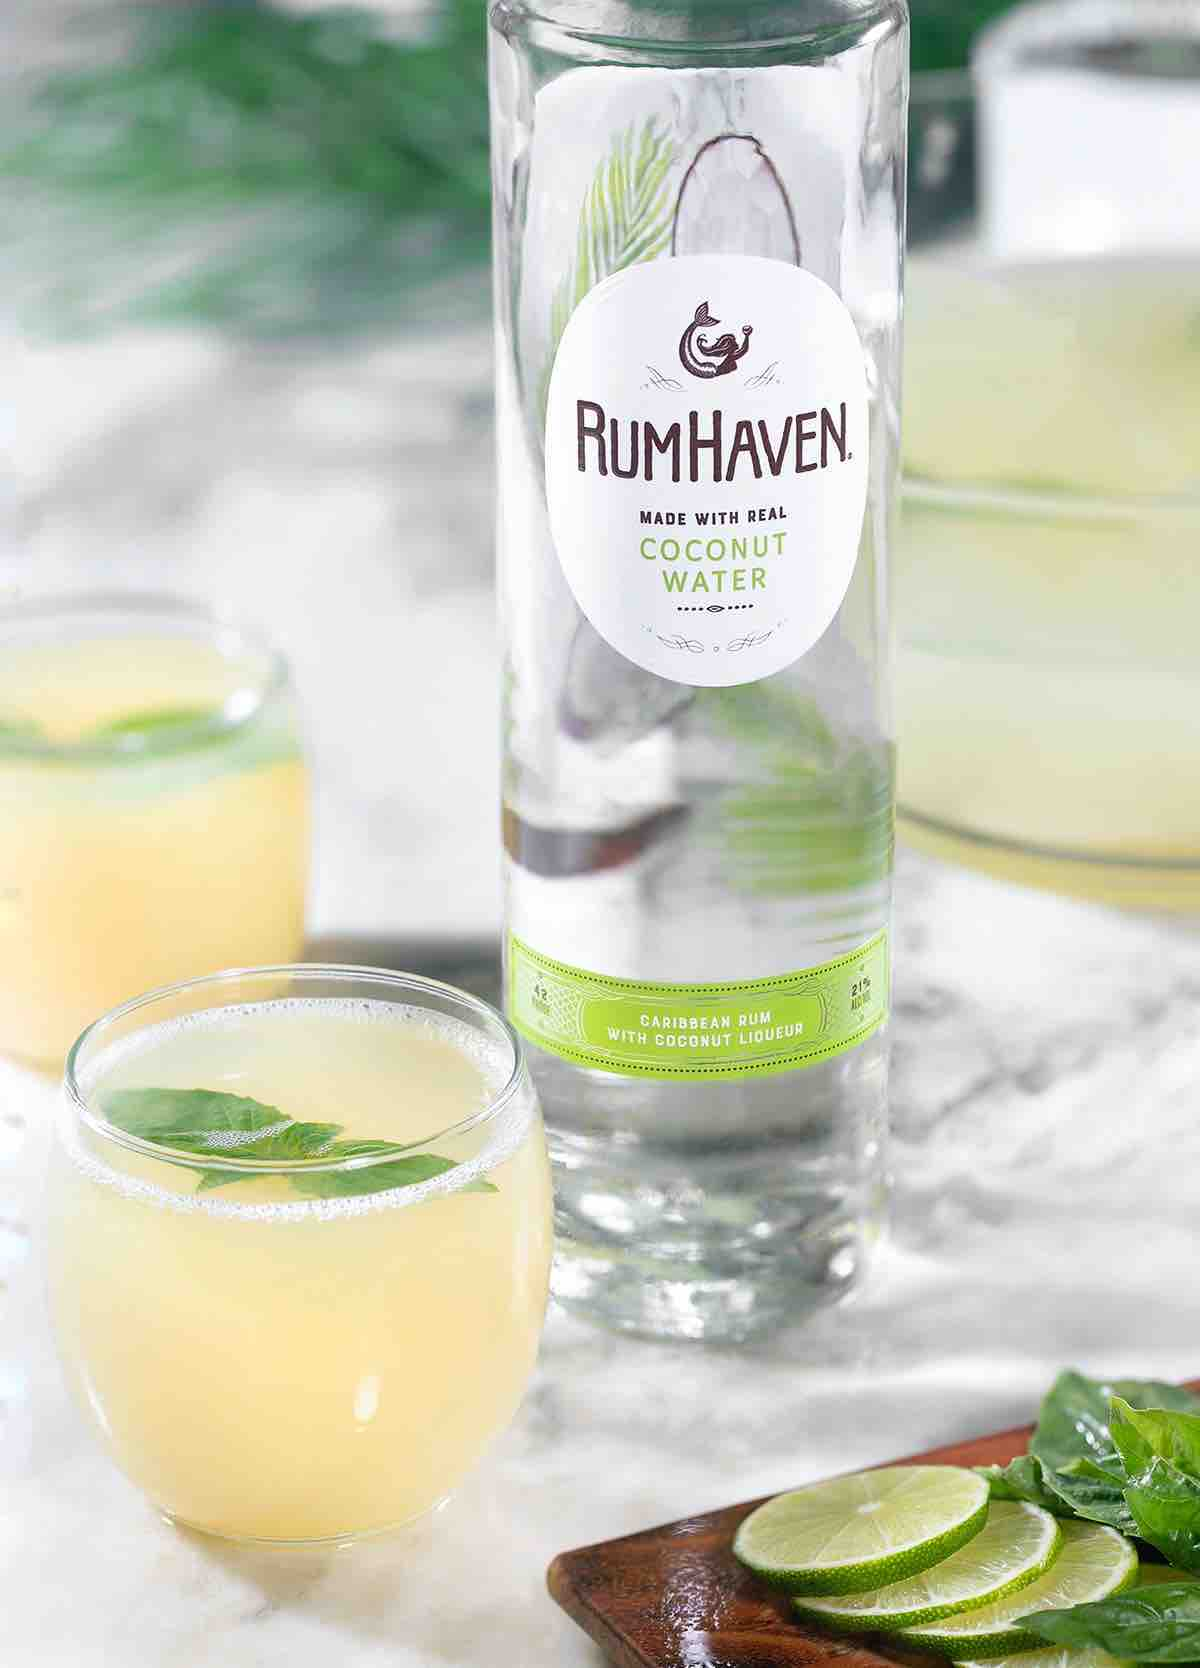 Delicious Cocktails To Mix Up For Friendsgiving Celebrations